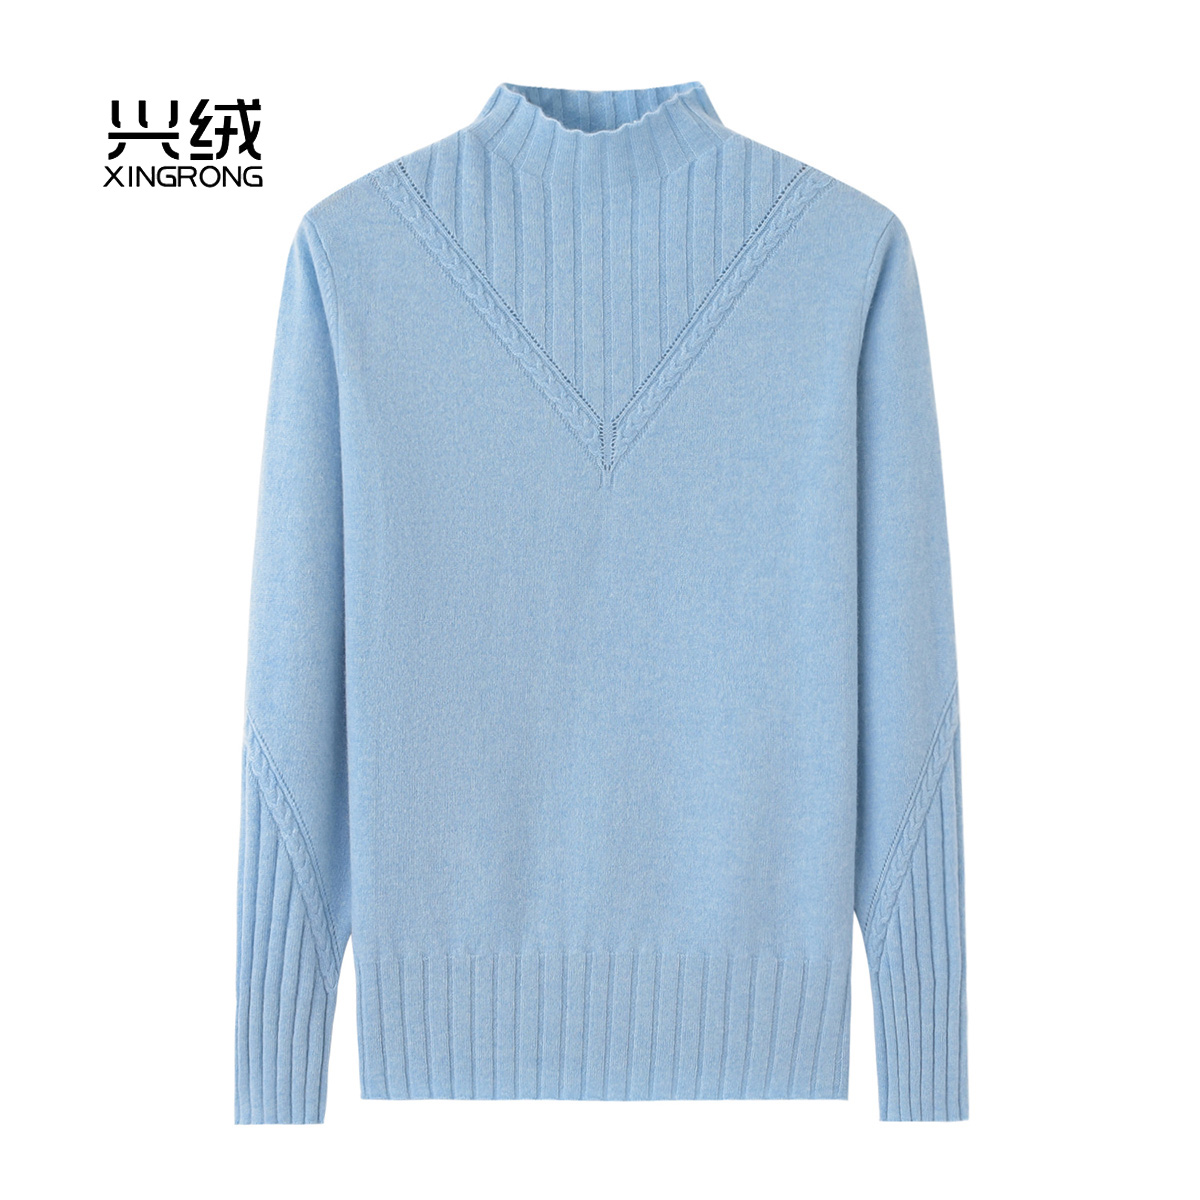 Xingrong 2019 autumn new simple cashmere sweater womens half high neck knitted loose bottomed Pullover hollow out sweater